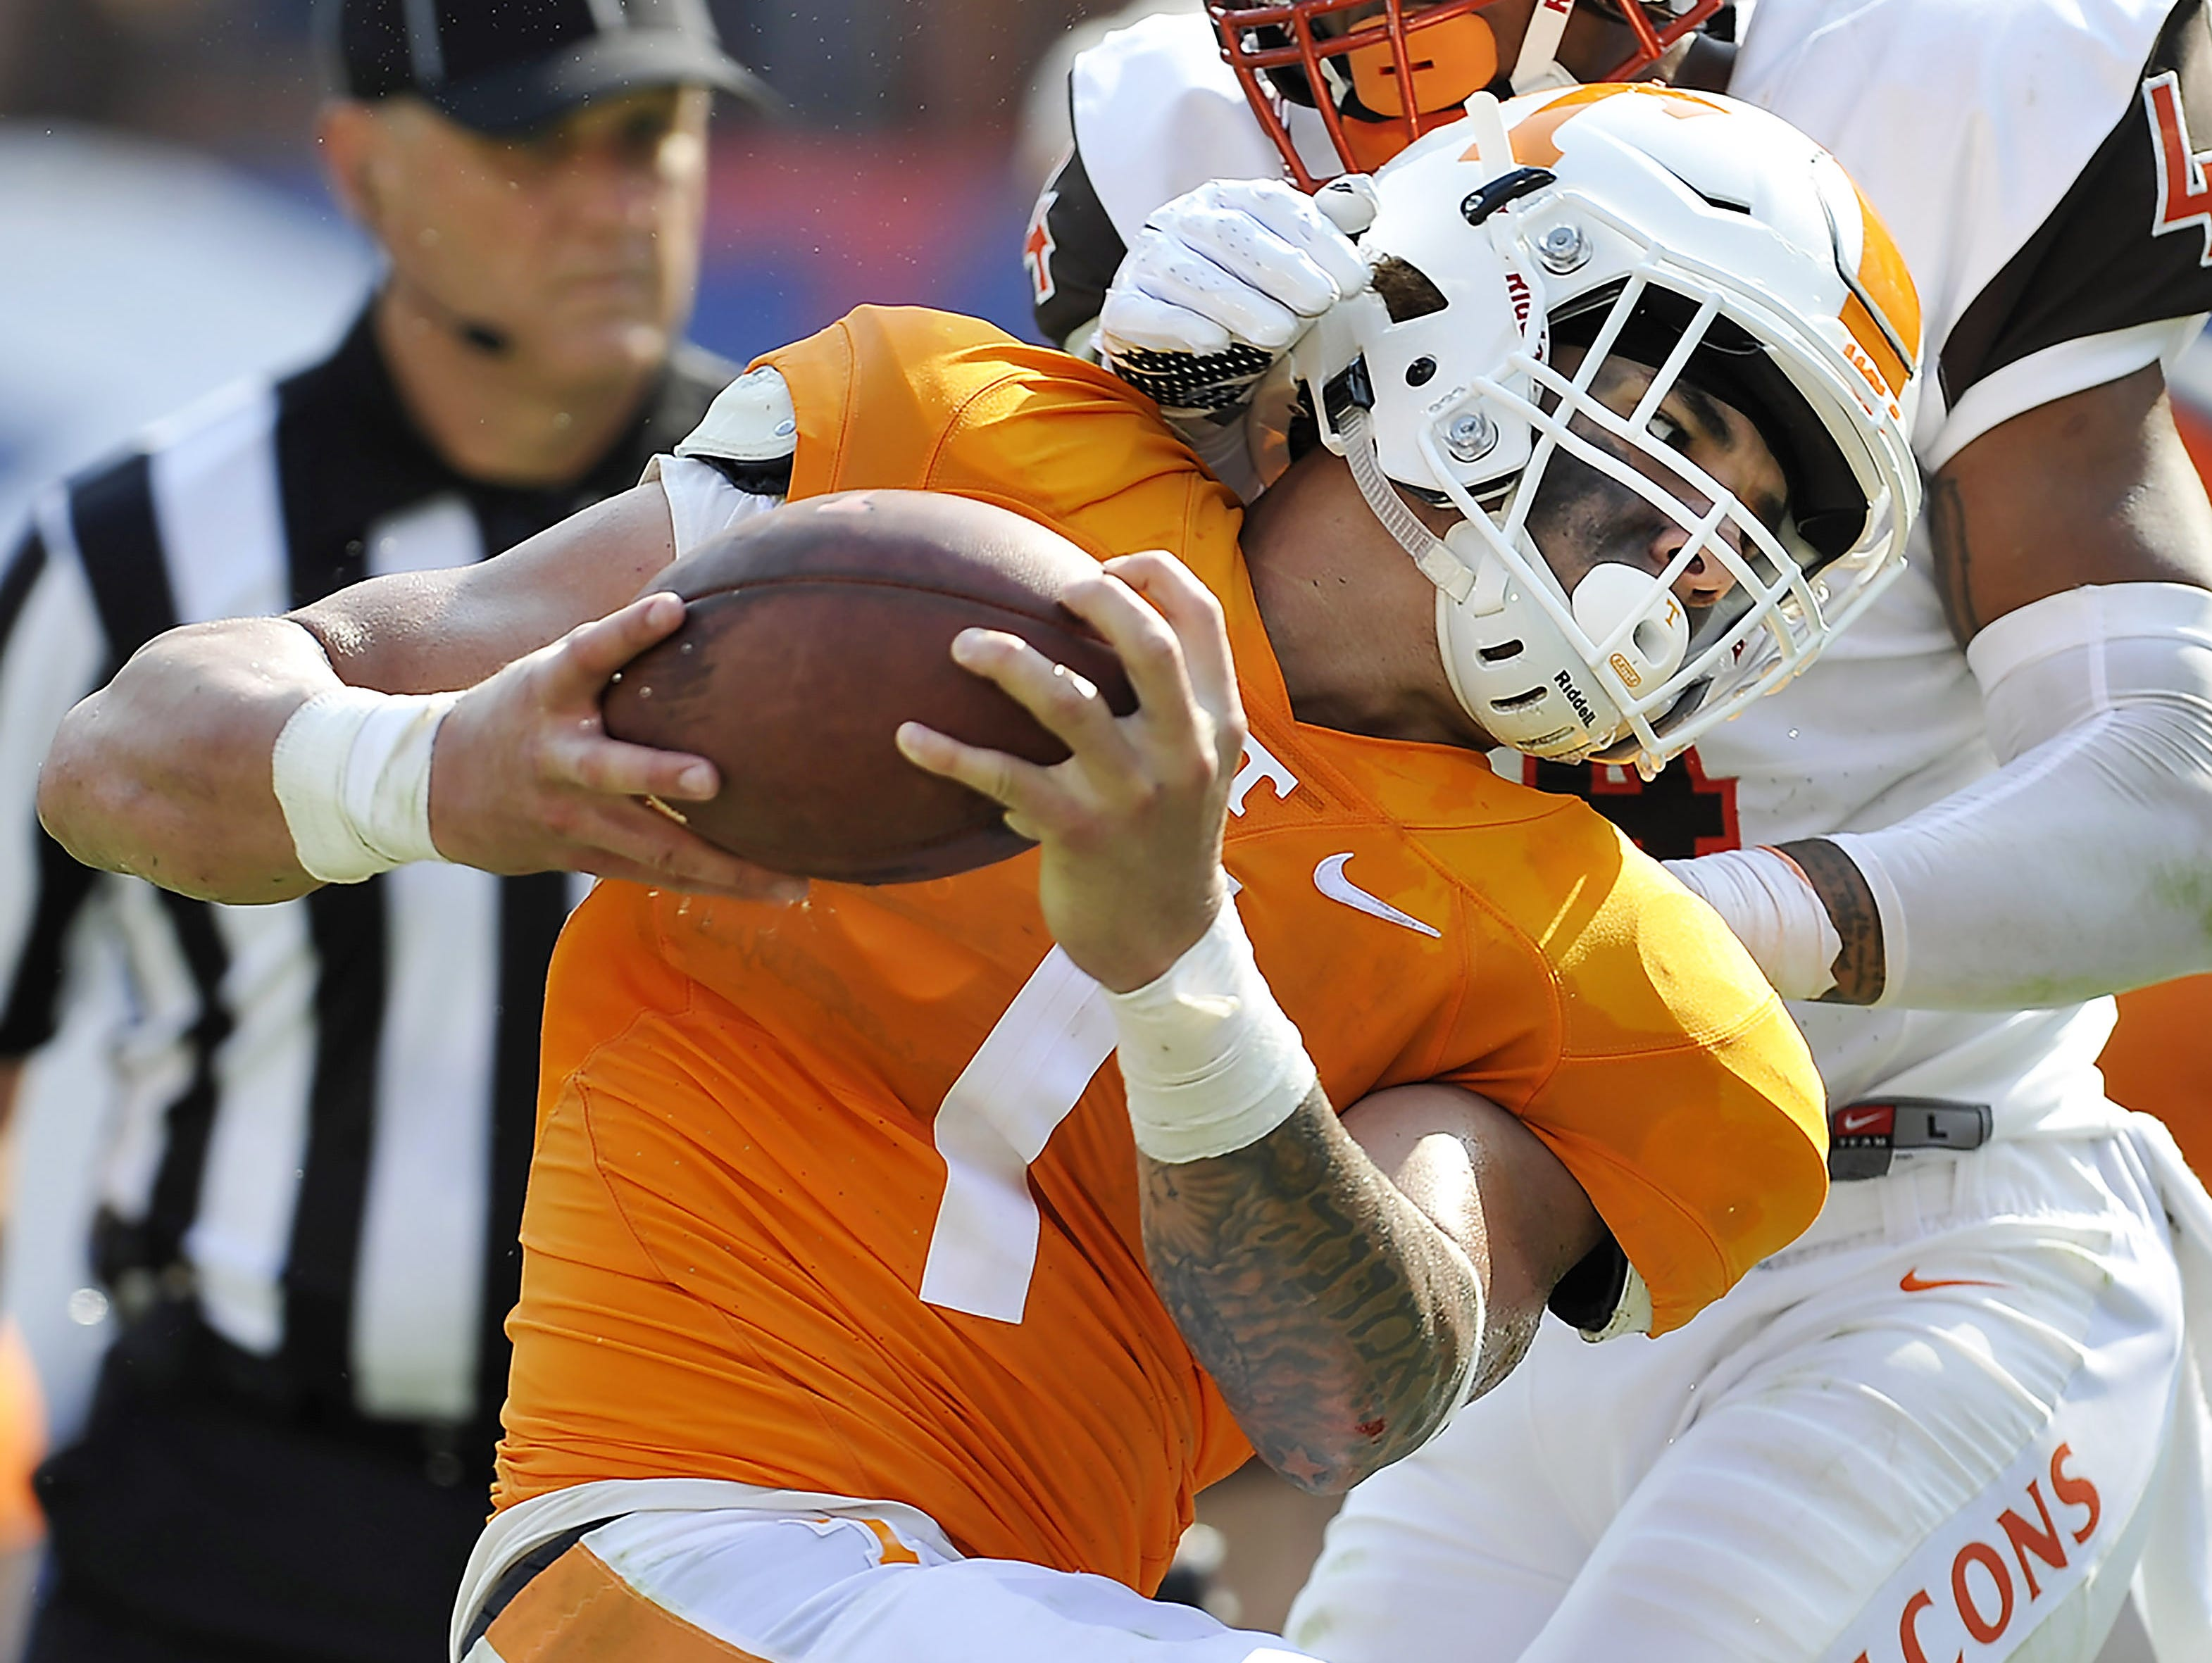 Tennessee running back Jalen Hurd (1) powers past Bowling Green defensive back Eilar Hardy (4) during the game in September.